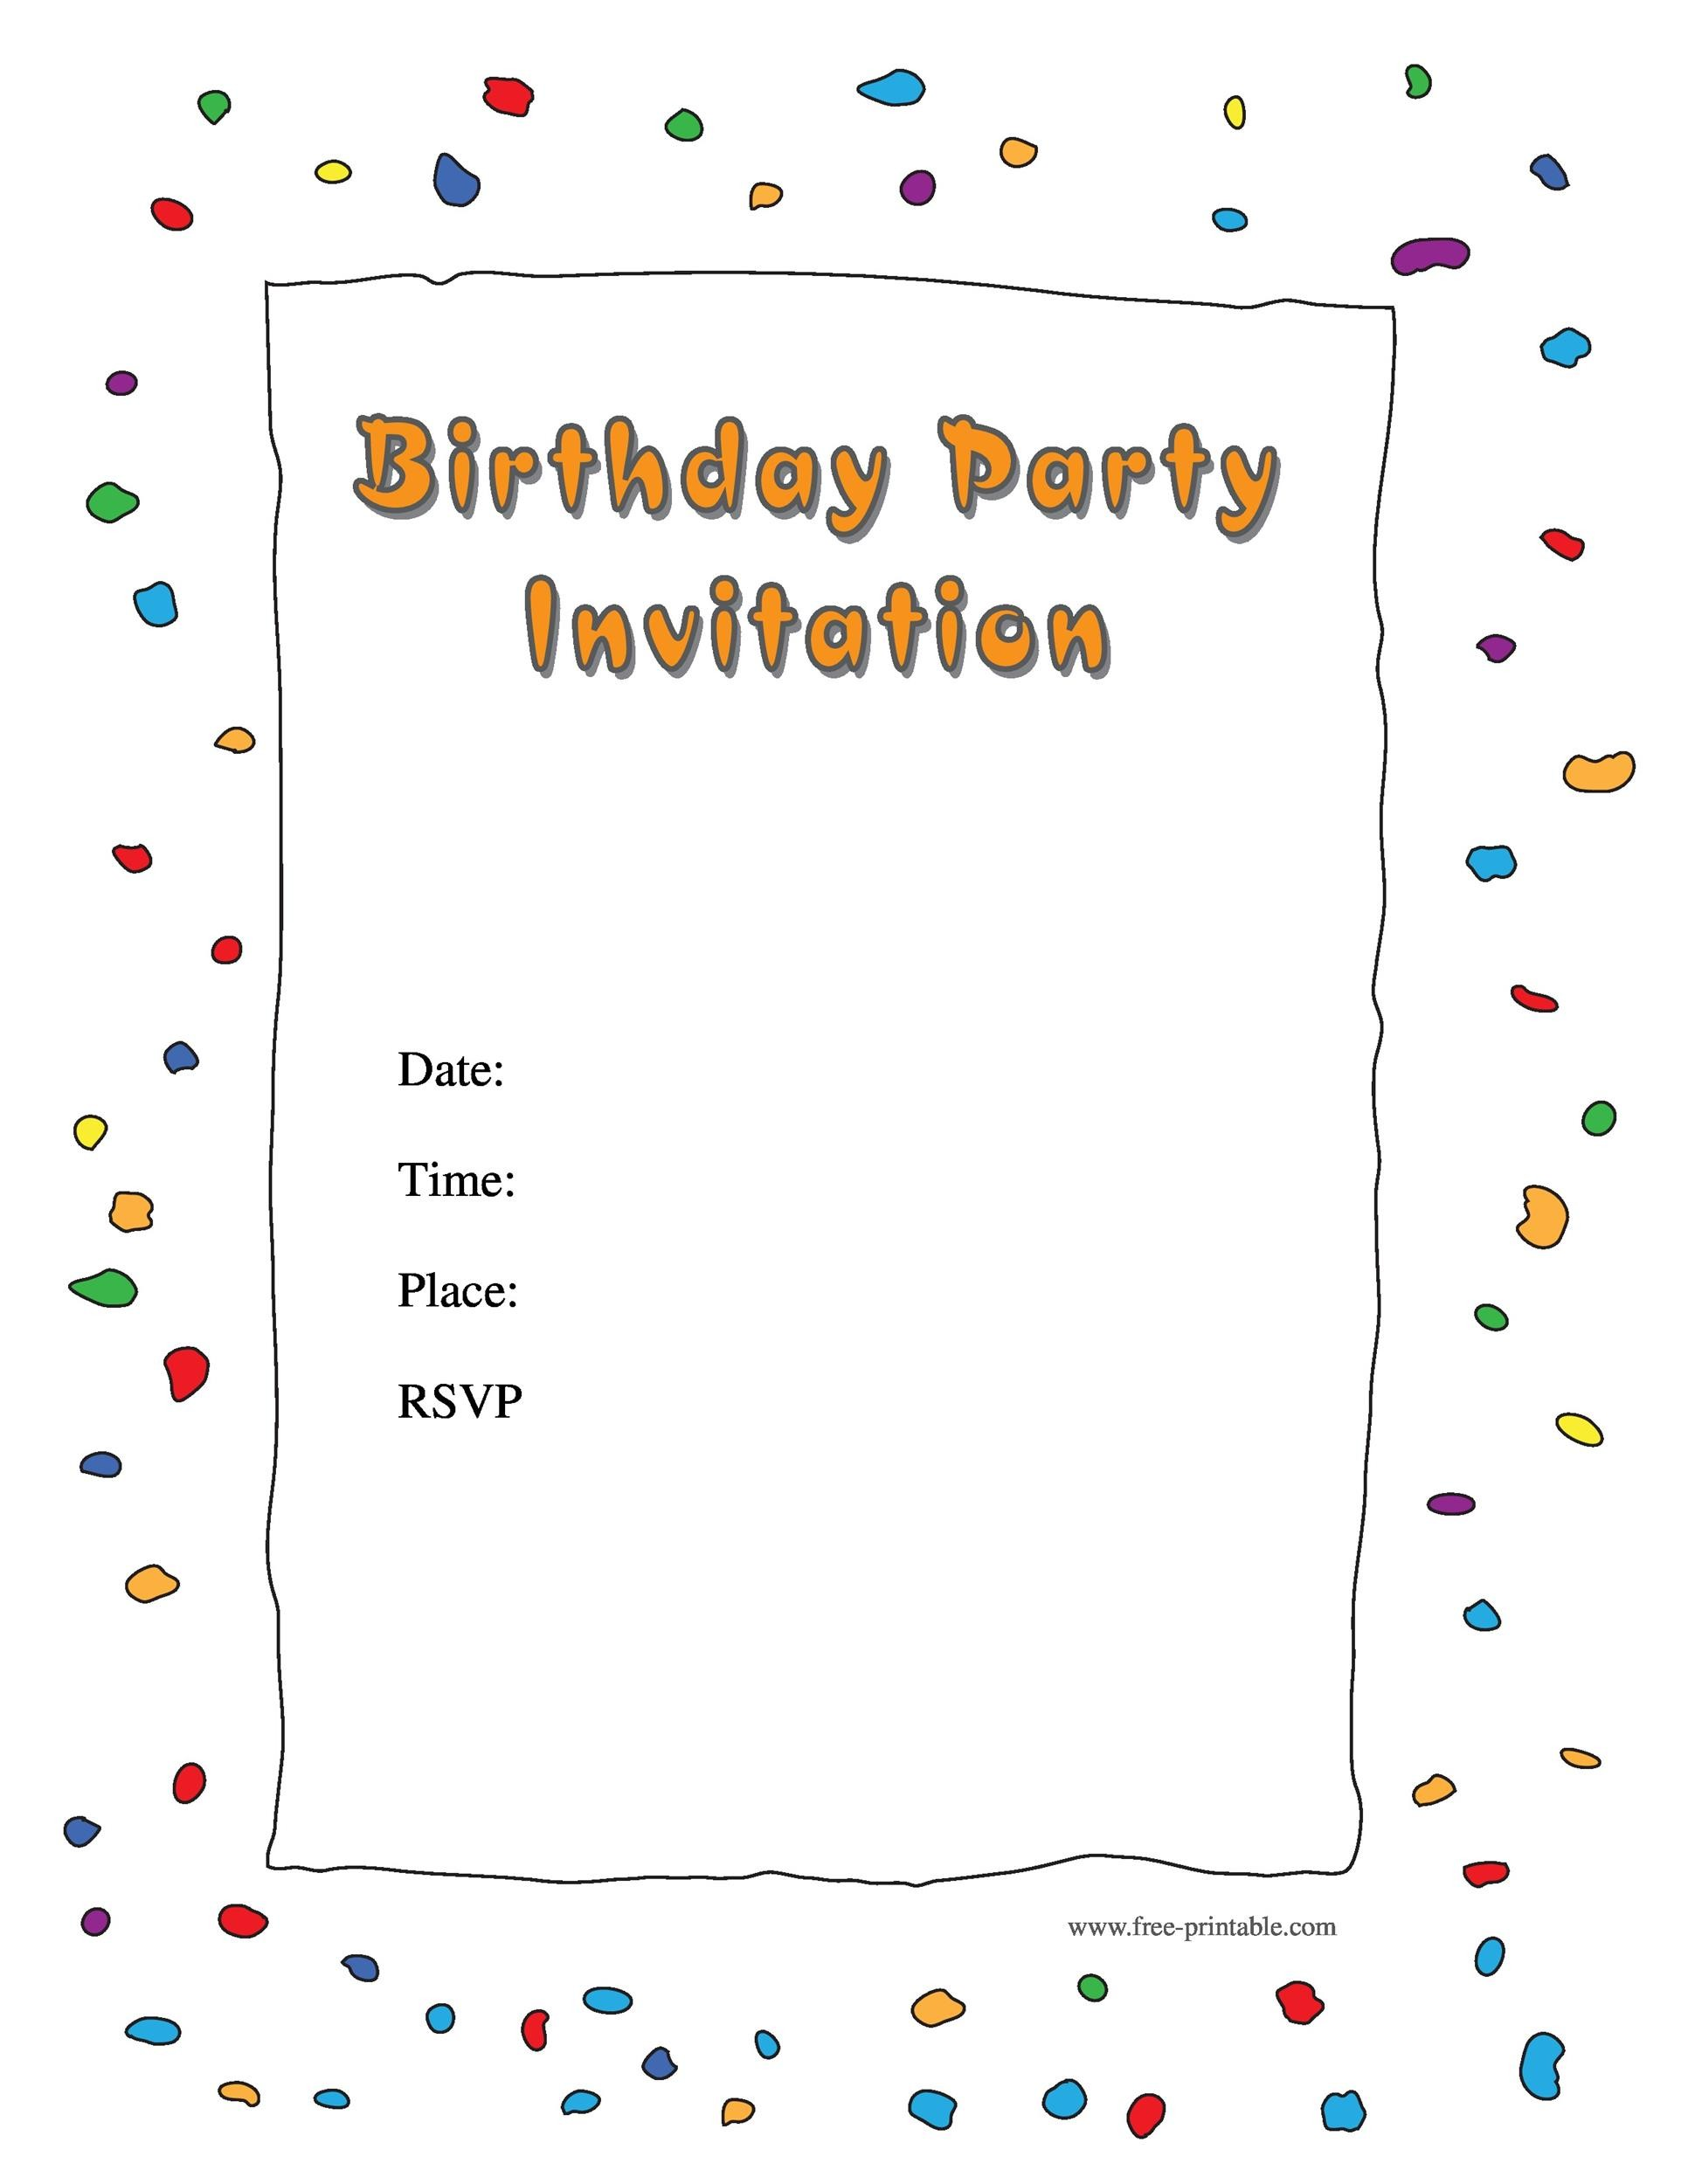 party invitation templates, Birthday invitations